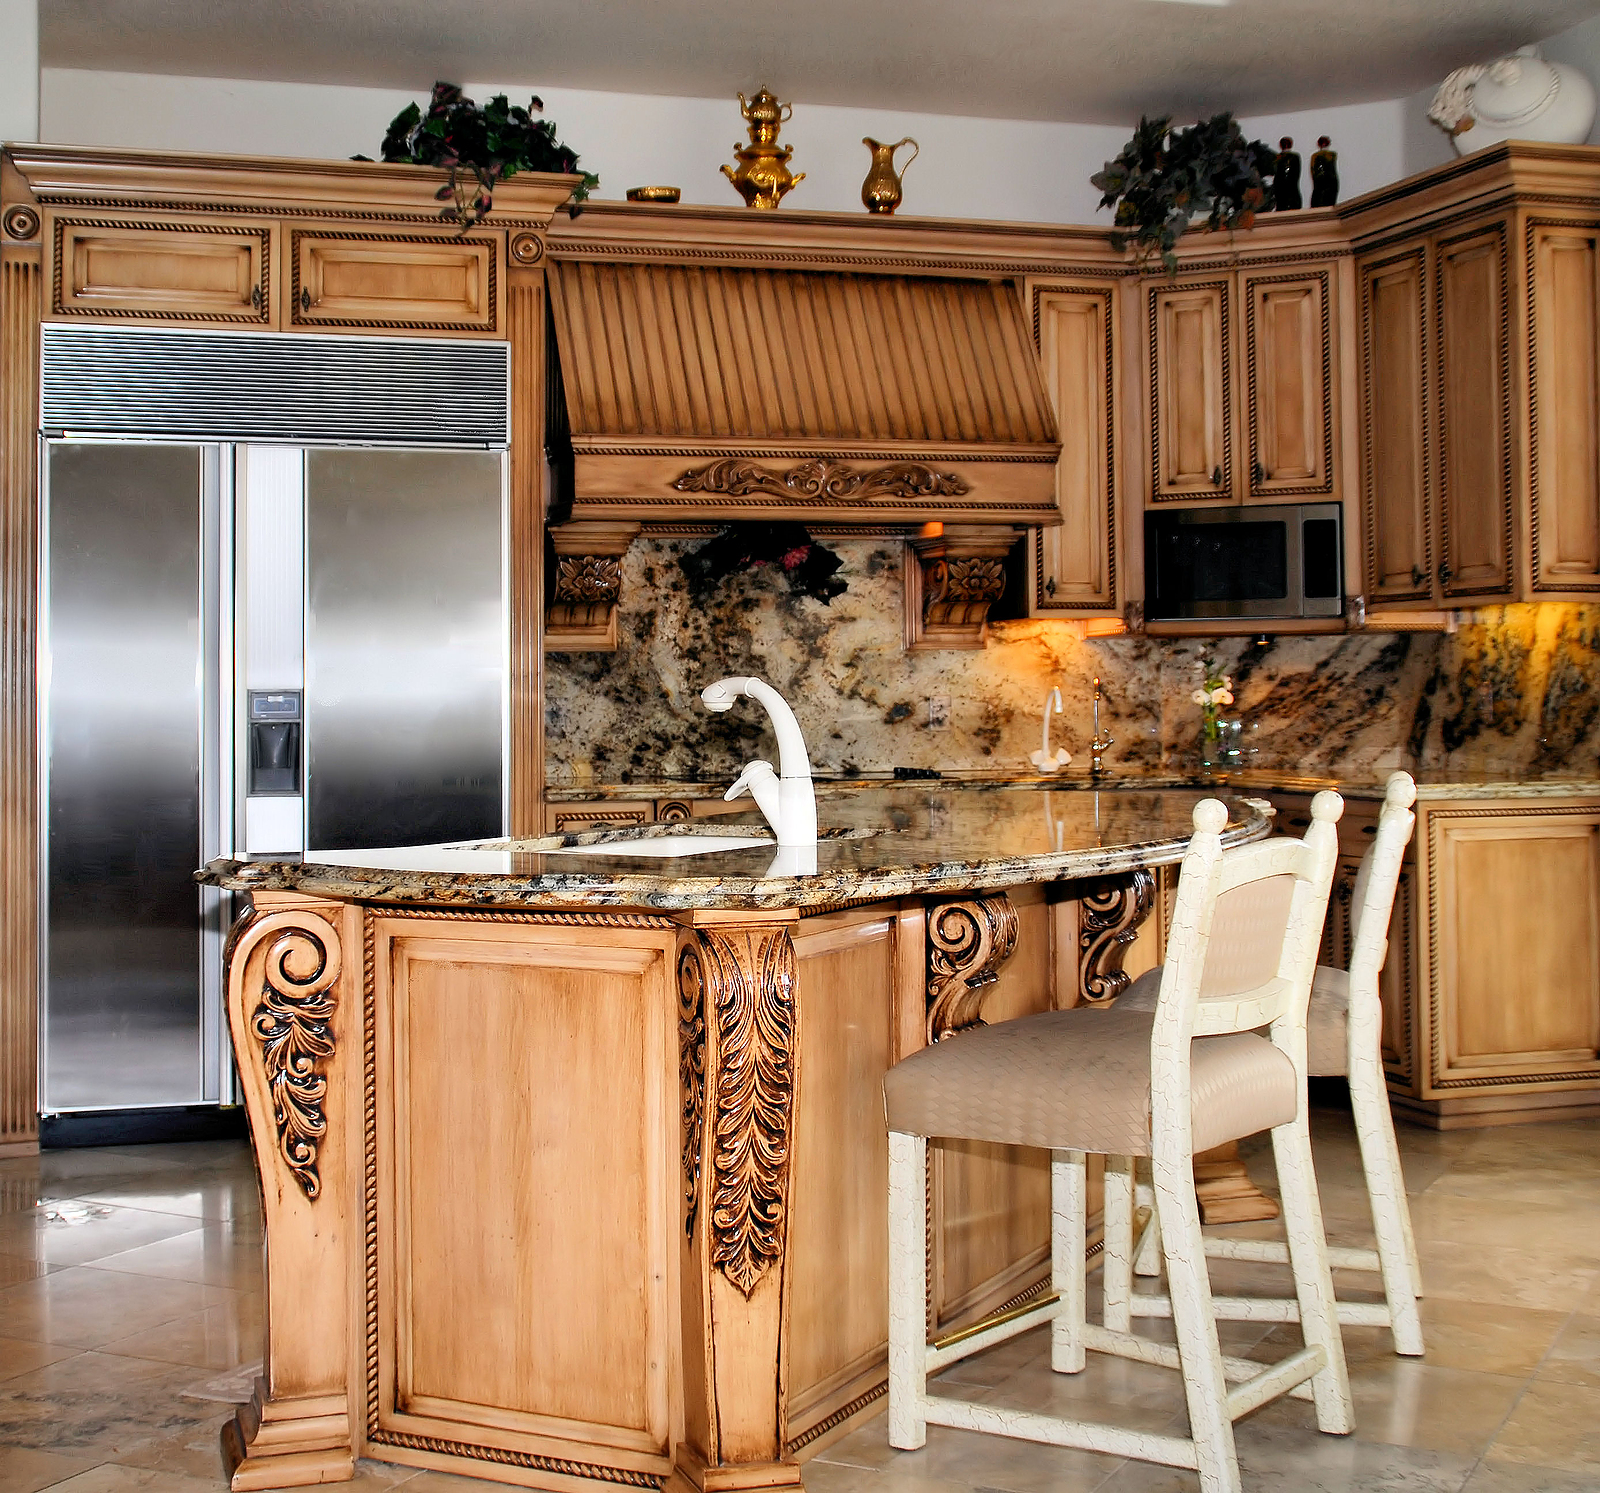 Donco designs is a pompano beach remodeling contractor for Kitchen modeling ideas